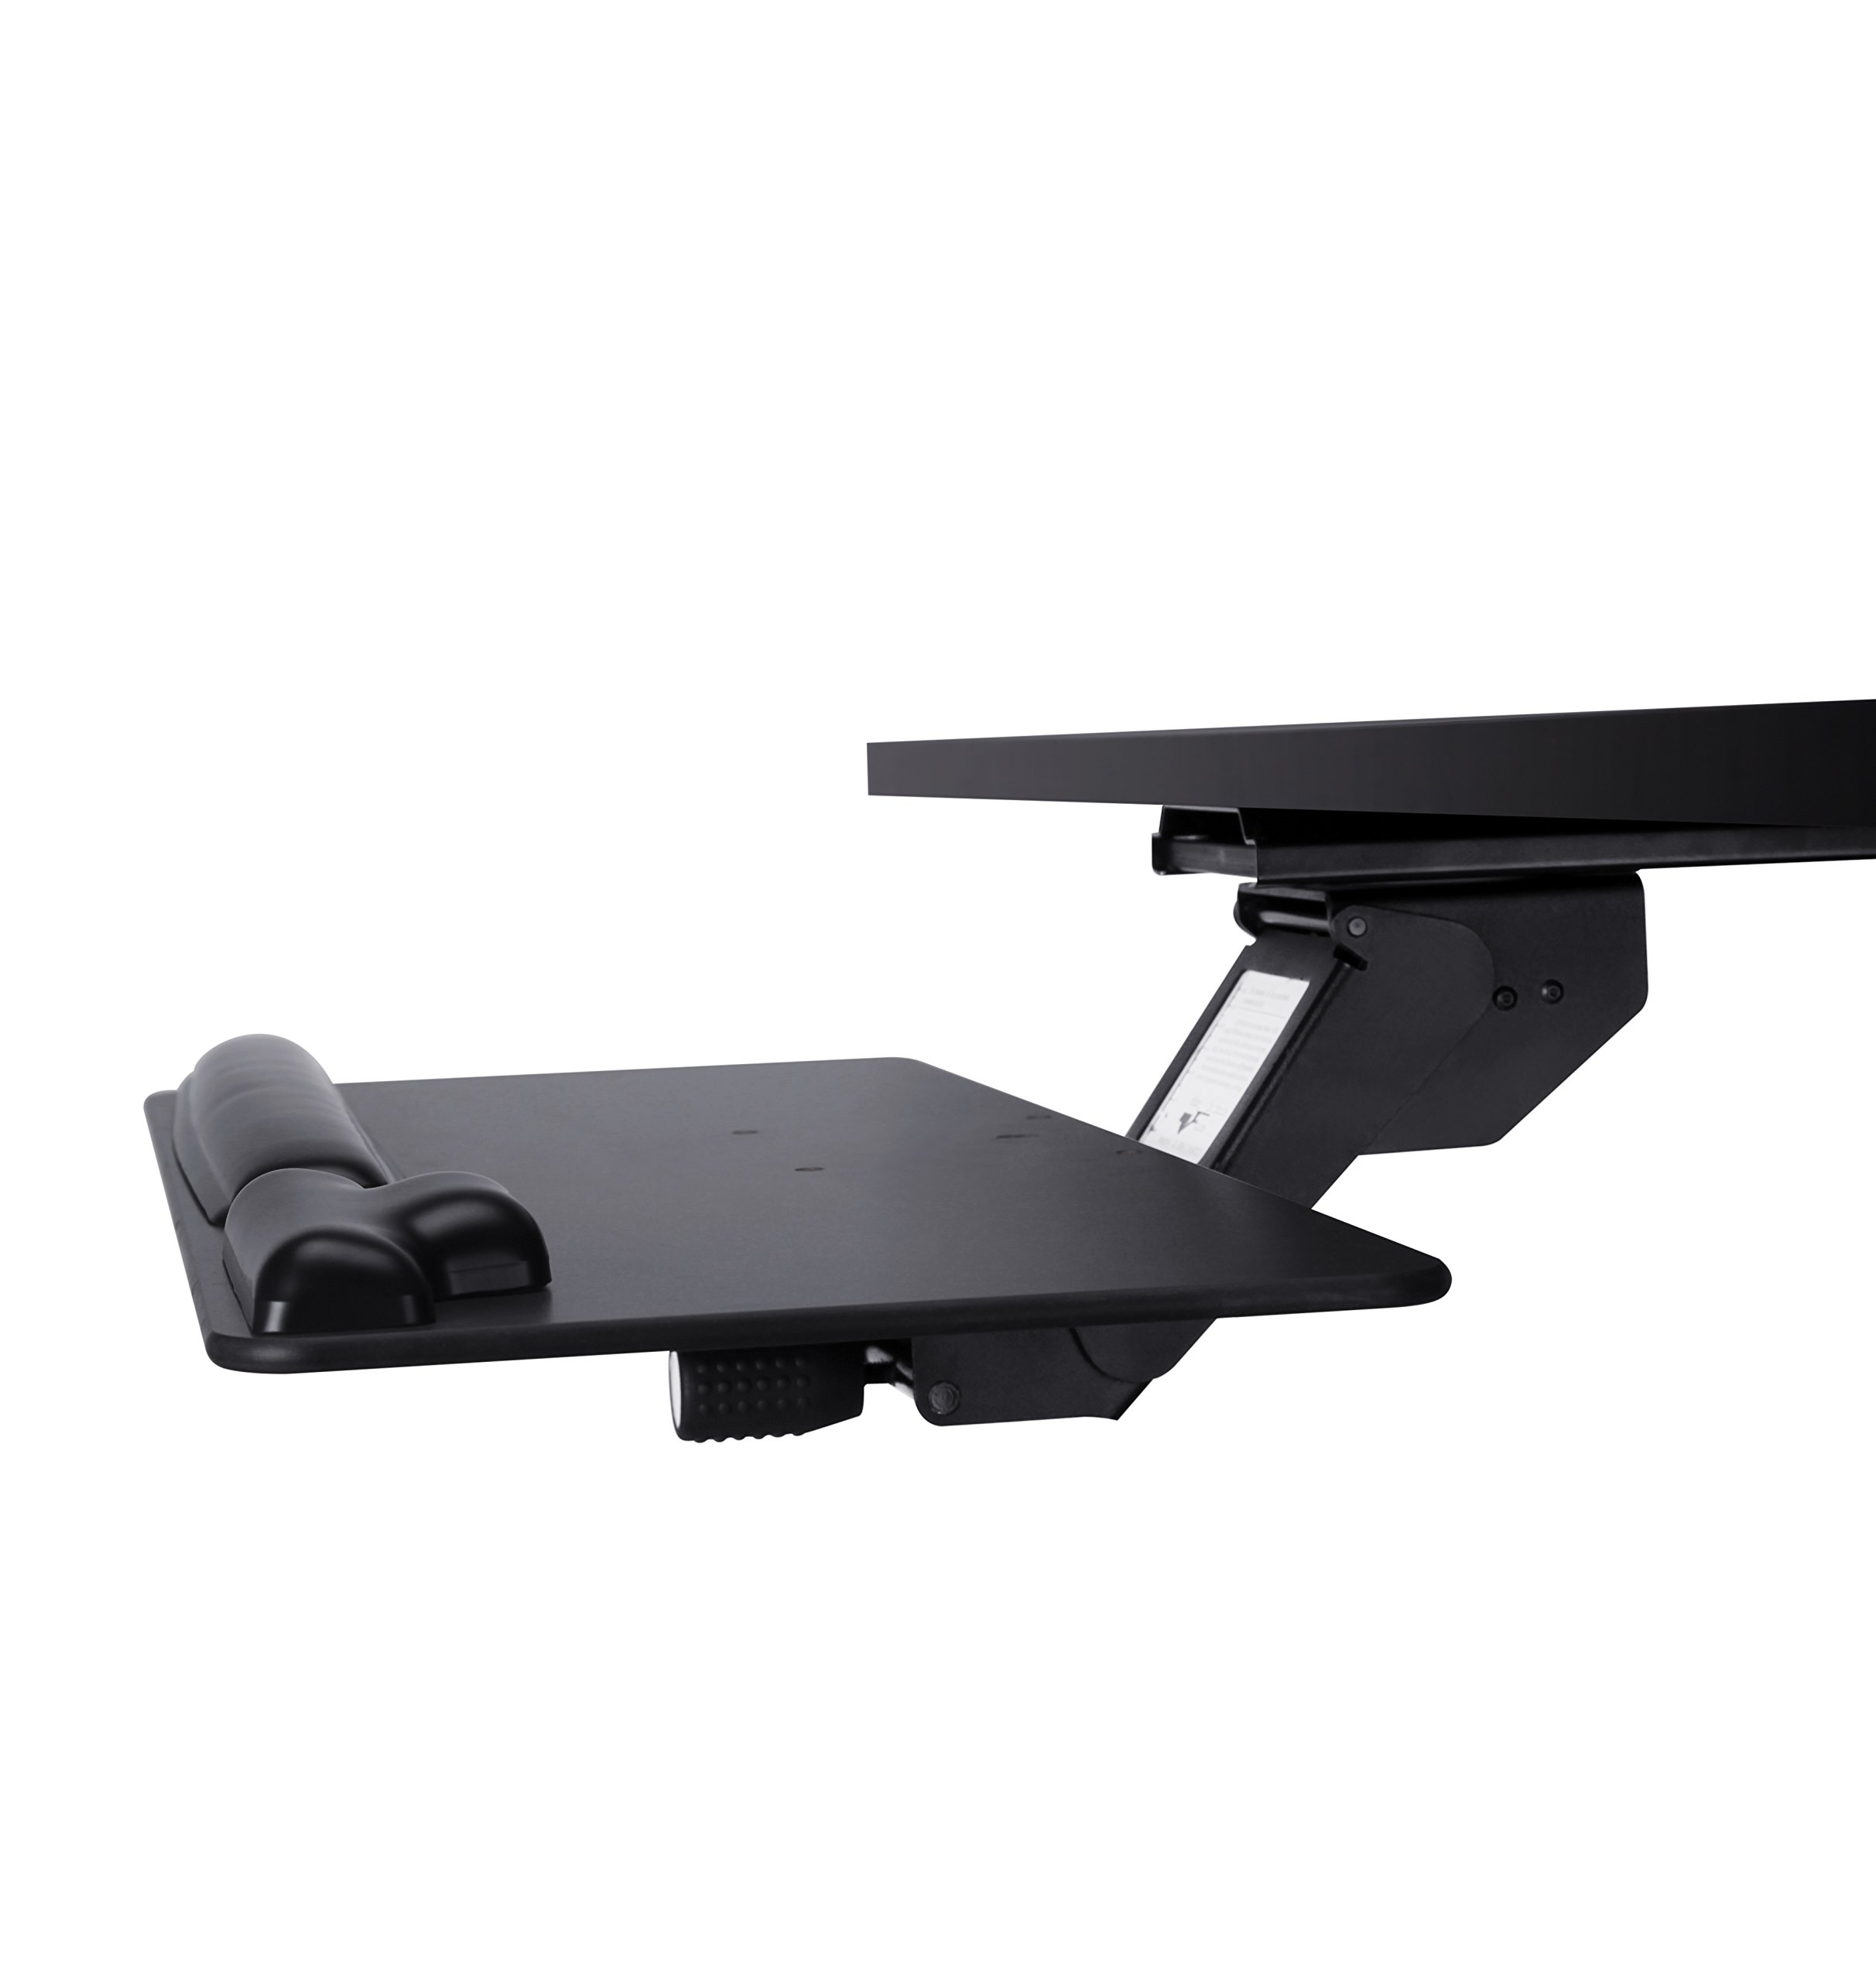 Furmix Adjustable Keyboard Tray Under Desk, Sturdy Platform with Gel Wrist Rest and Mouse Pad, Simply Adjust Height and Tilt for Comfort by Furmix